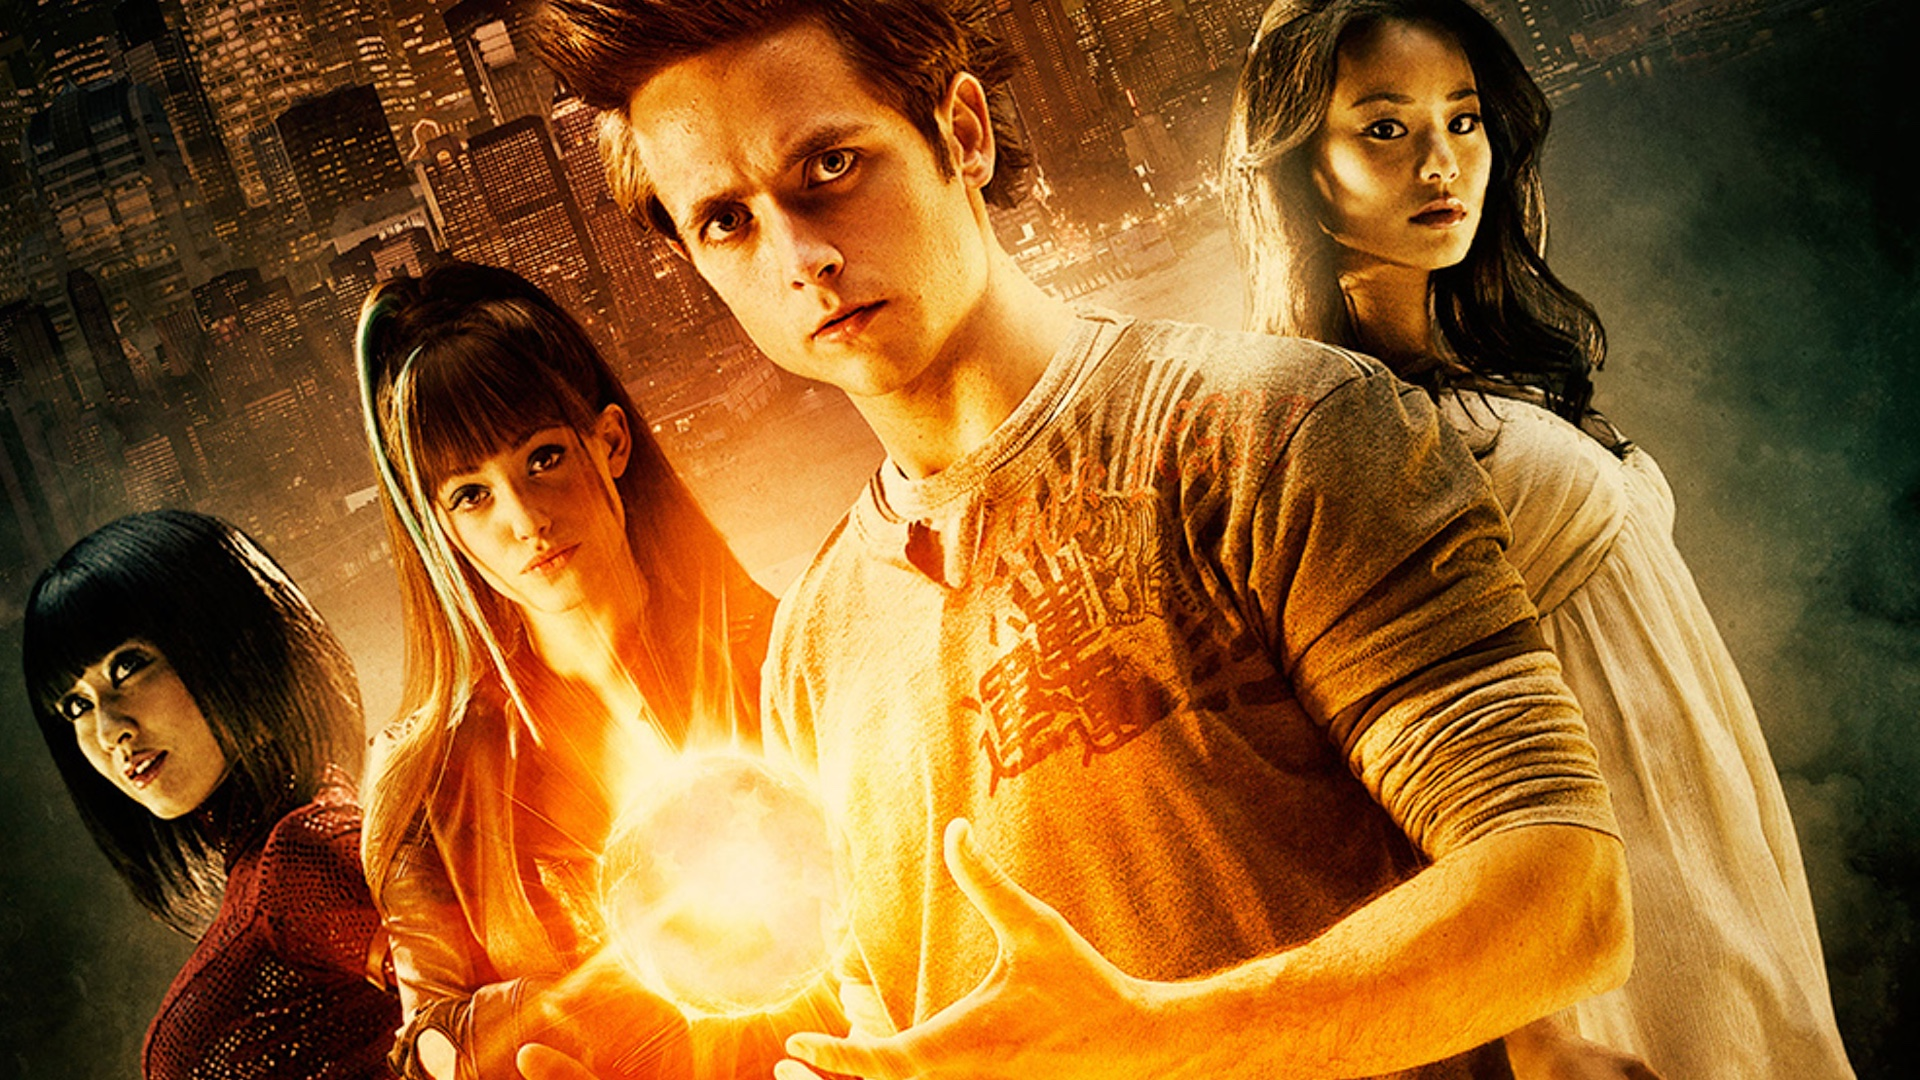 the-writer-of-dragonball-evolution-offers-an-apology-to-fans-for-that-terrible-film